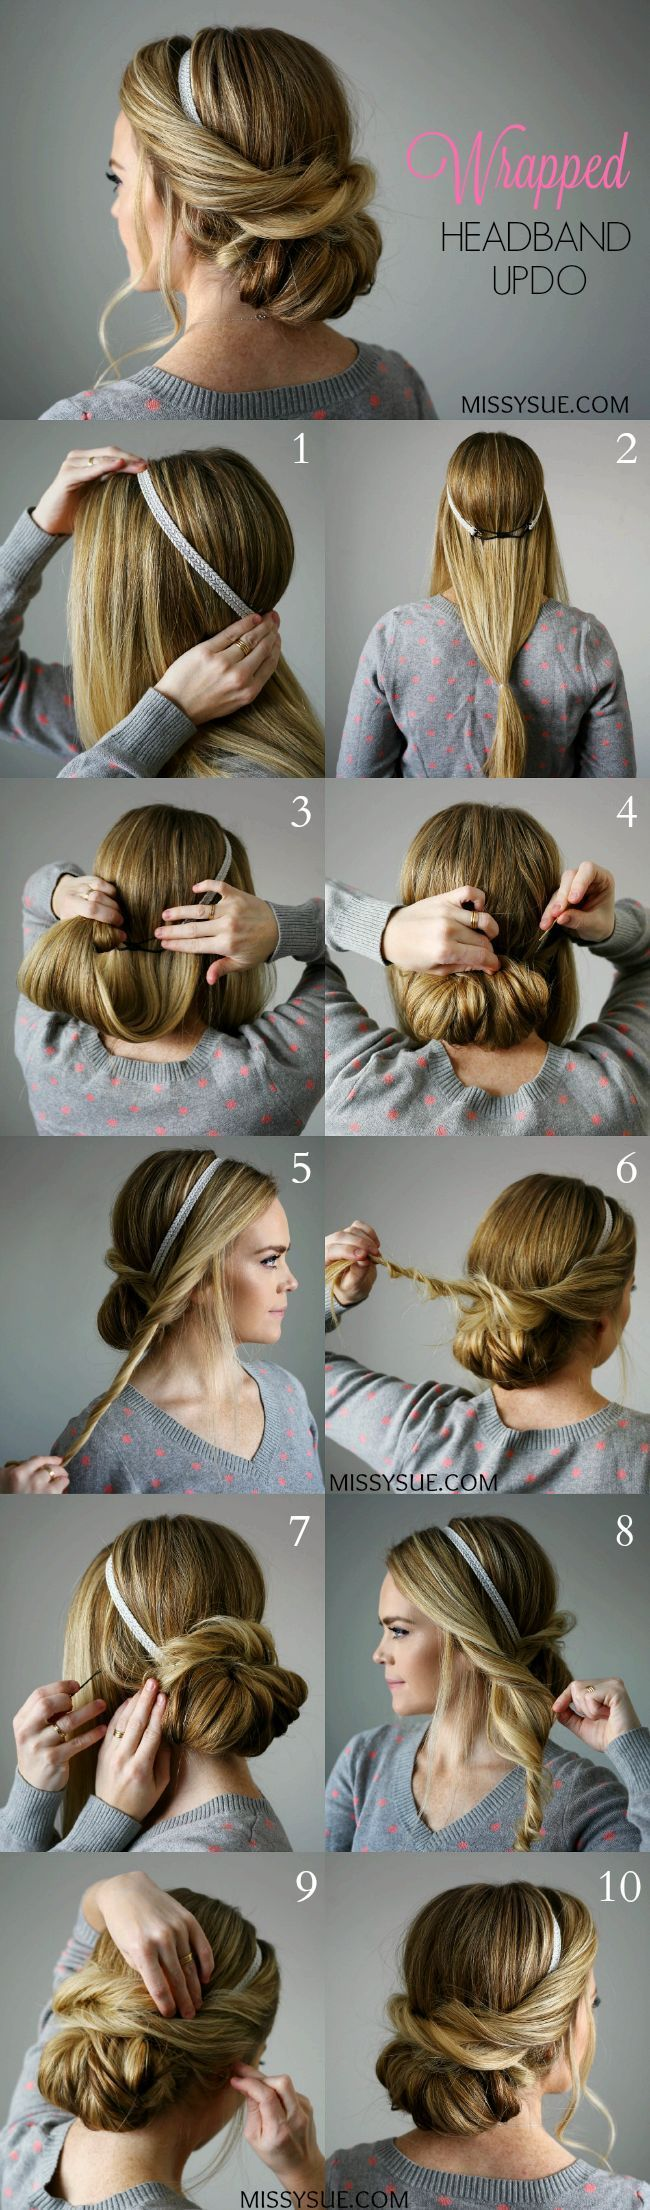 Easy hairstyles for women to look stylish in no time hair styles